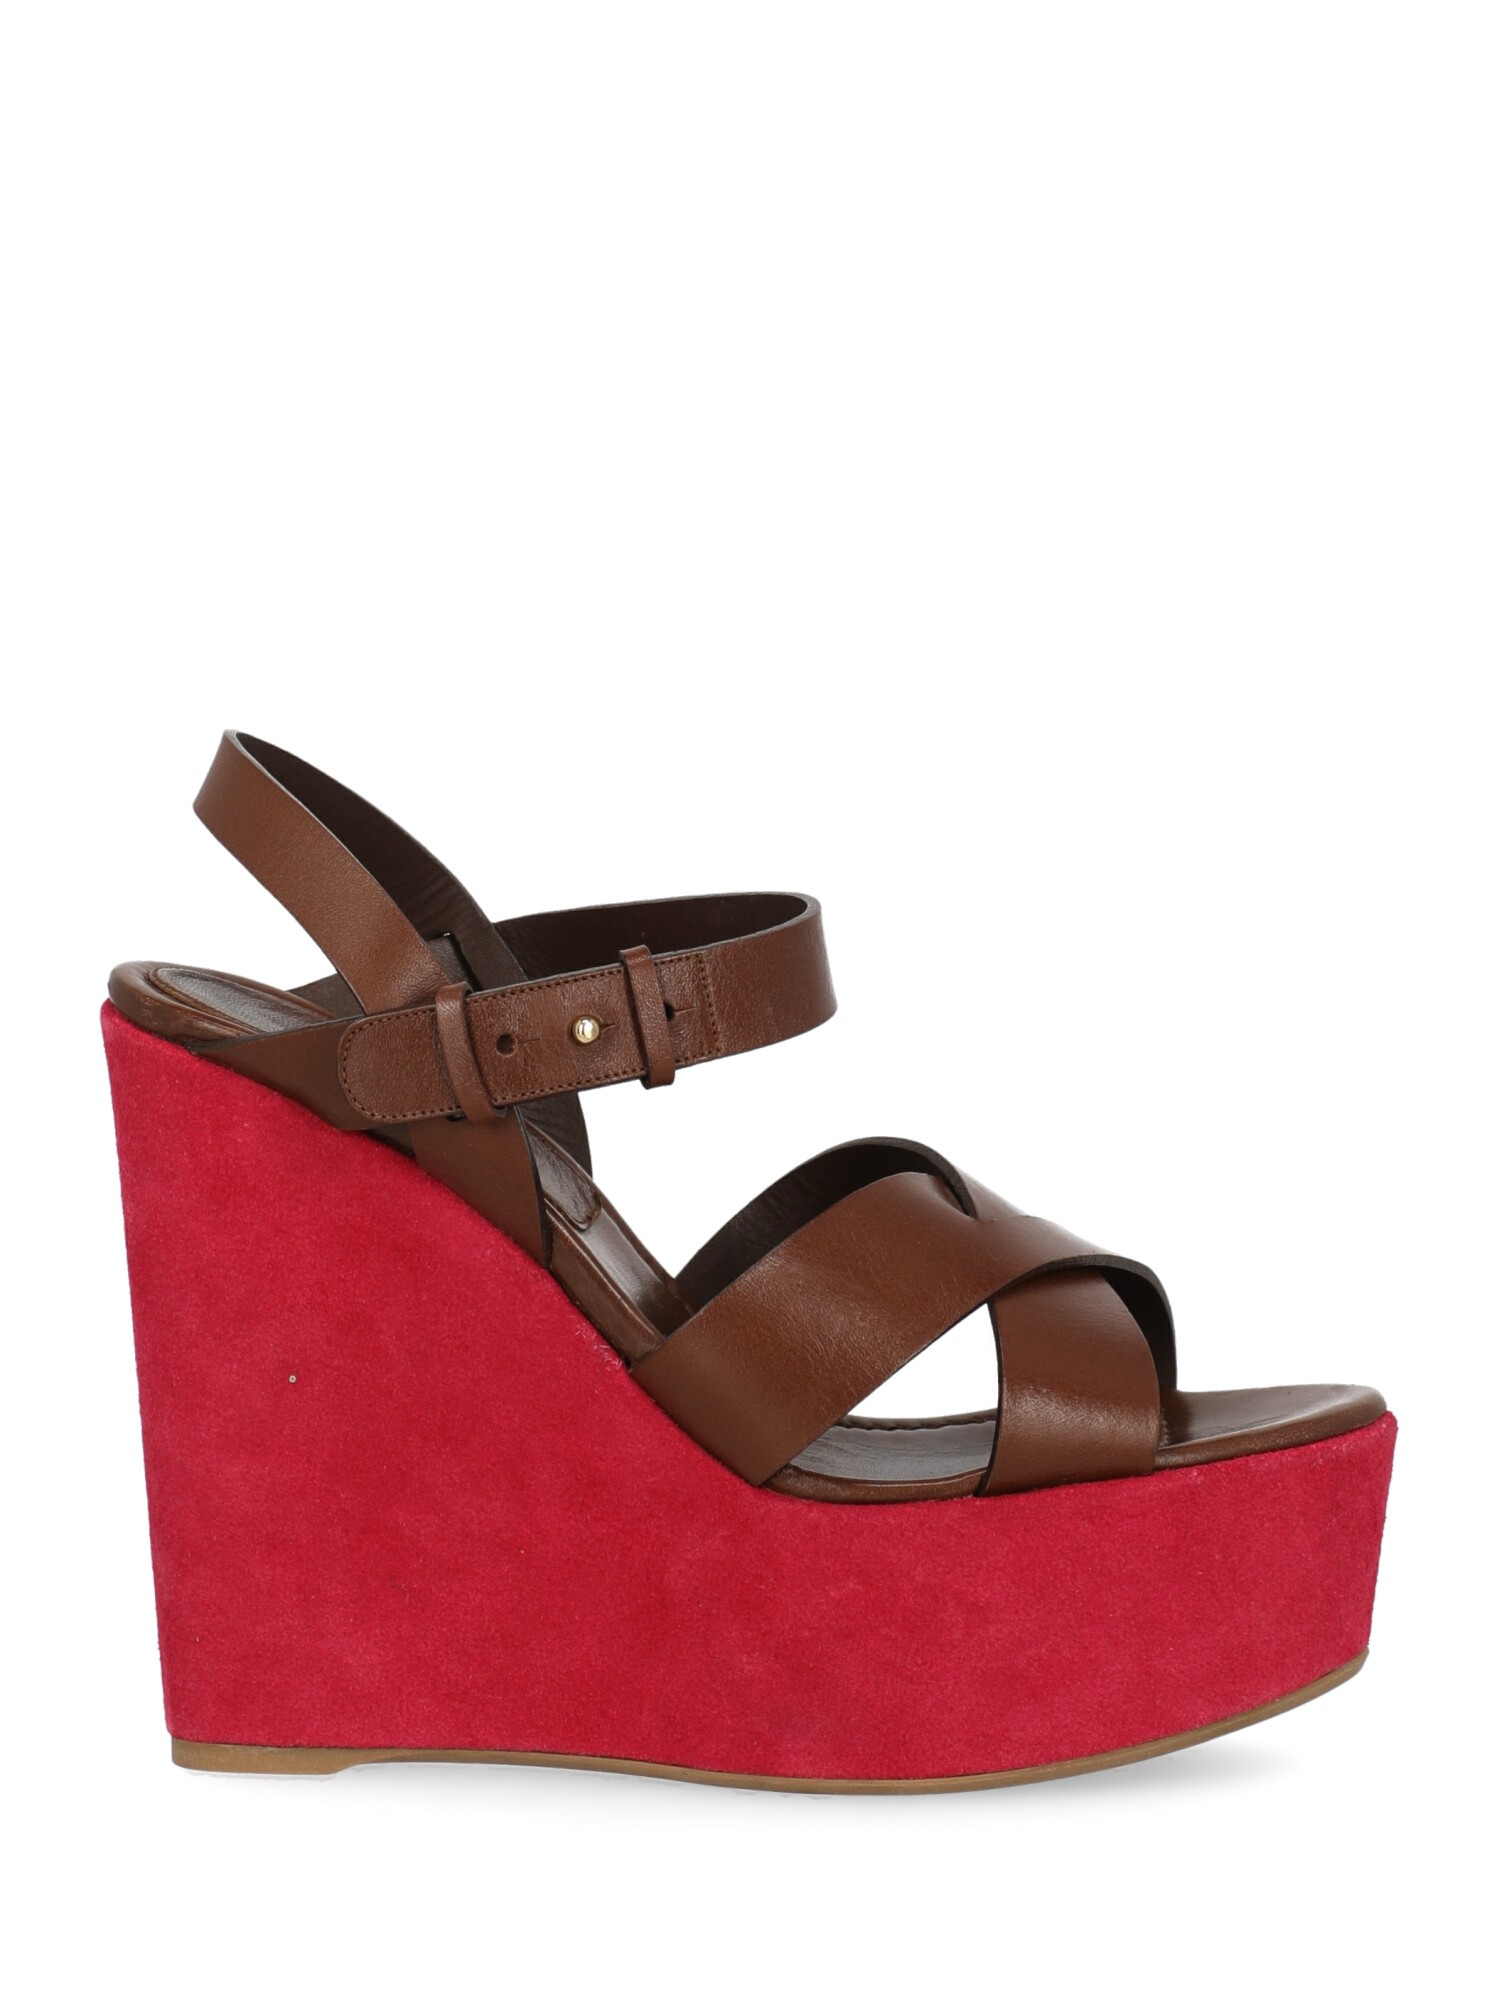 Pre-owned Sergio Rossi Shoe In Brown, Pink